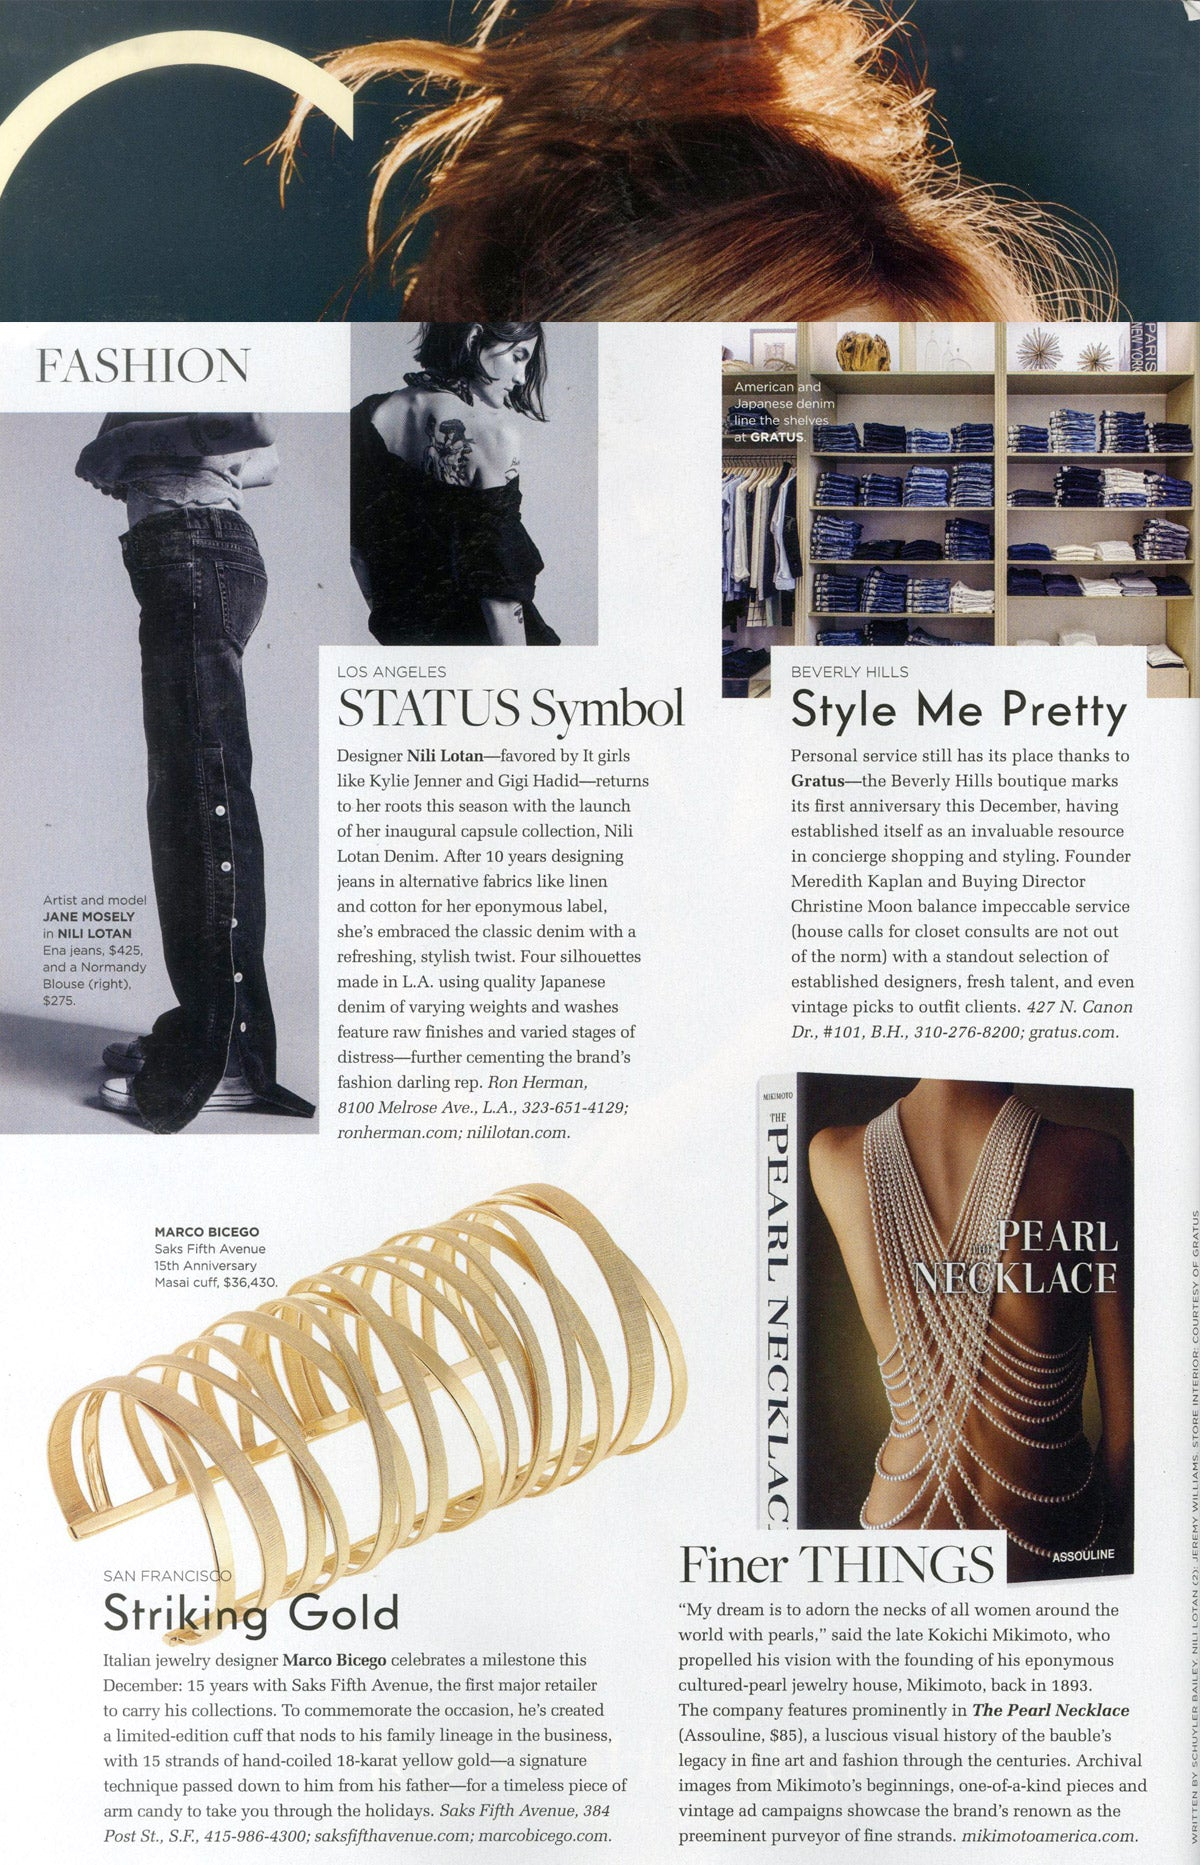 Marco Bicego 15th Anniversary Cuff in C Magazine